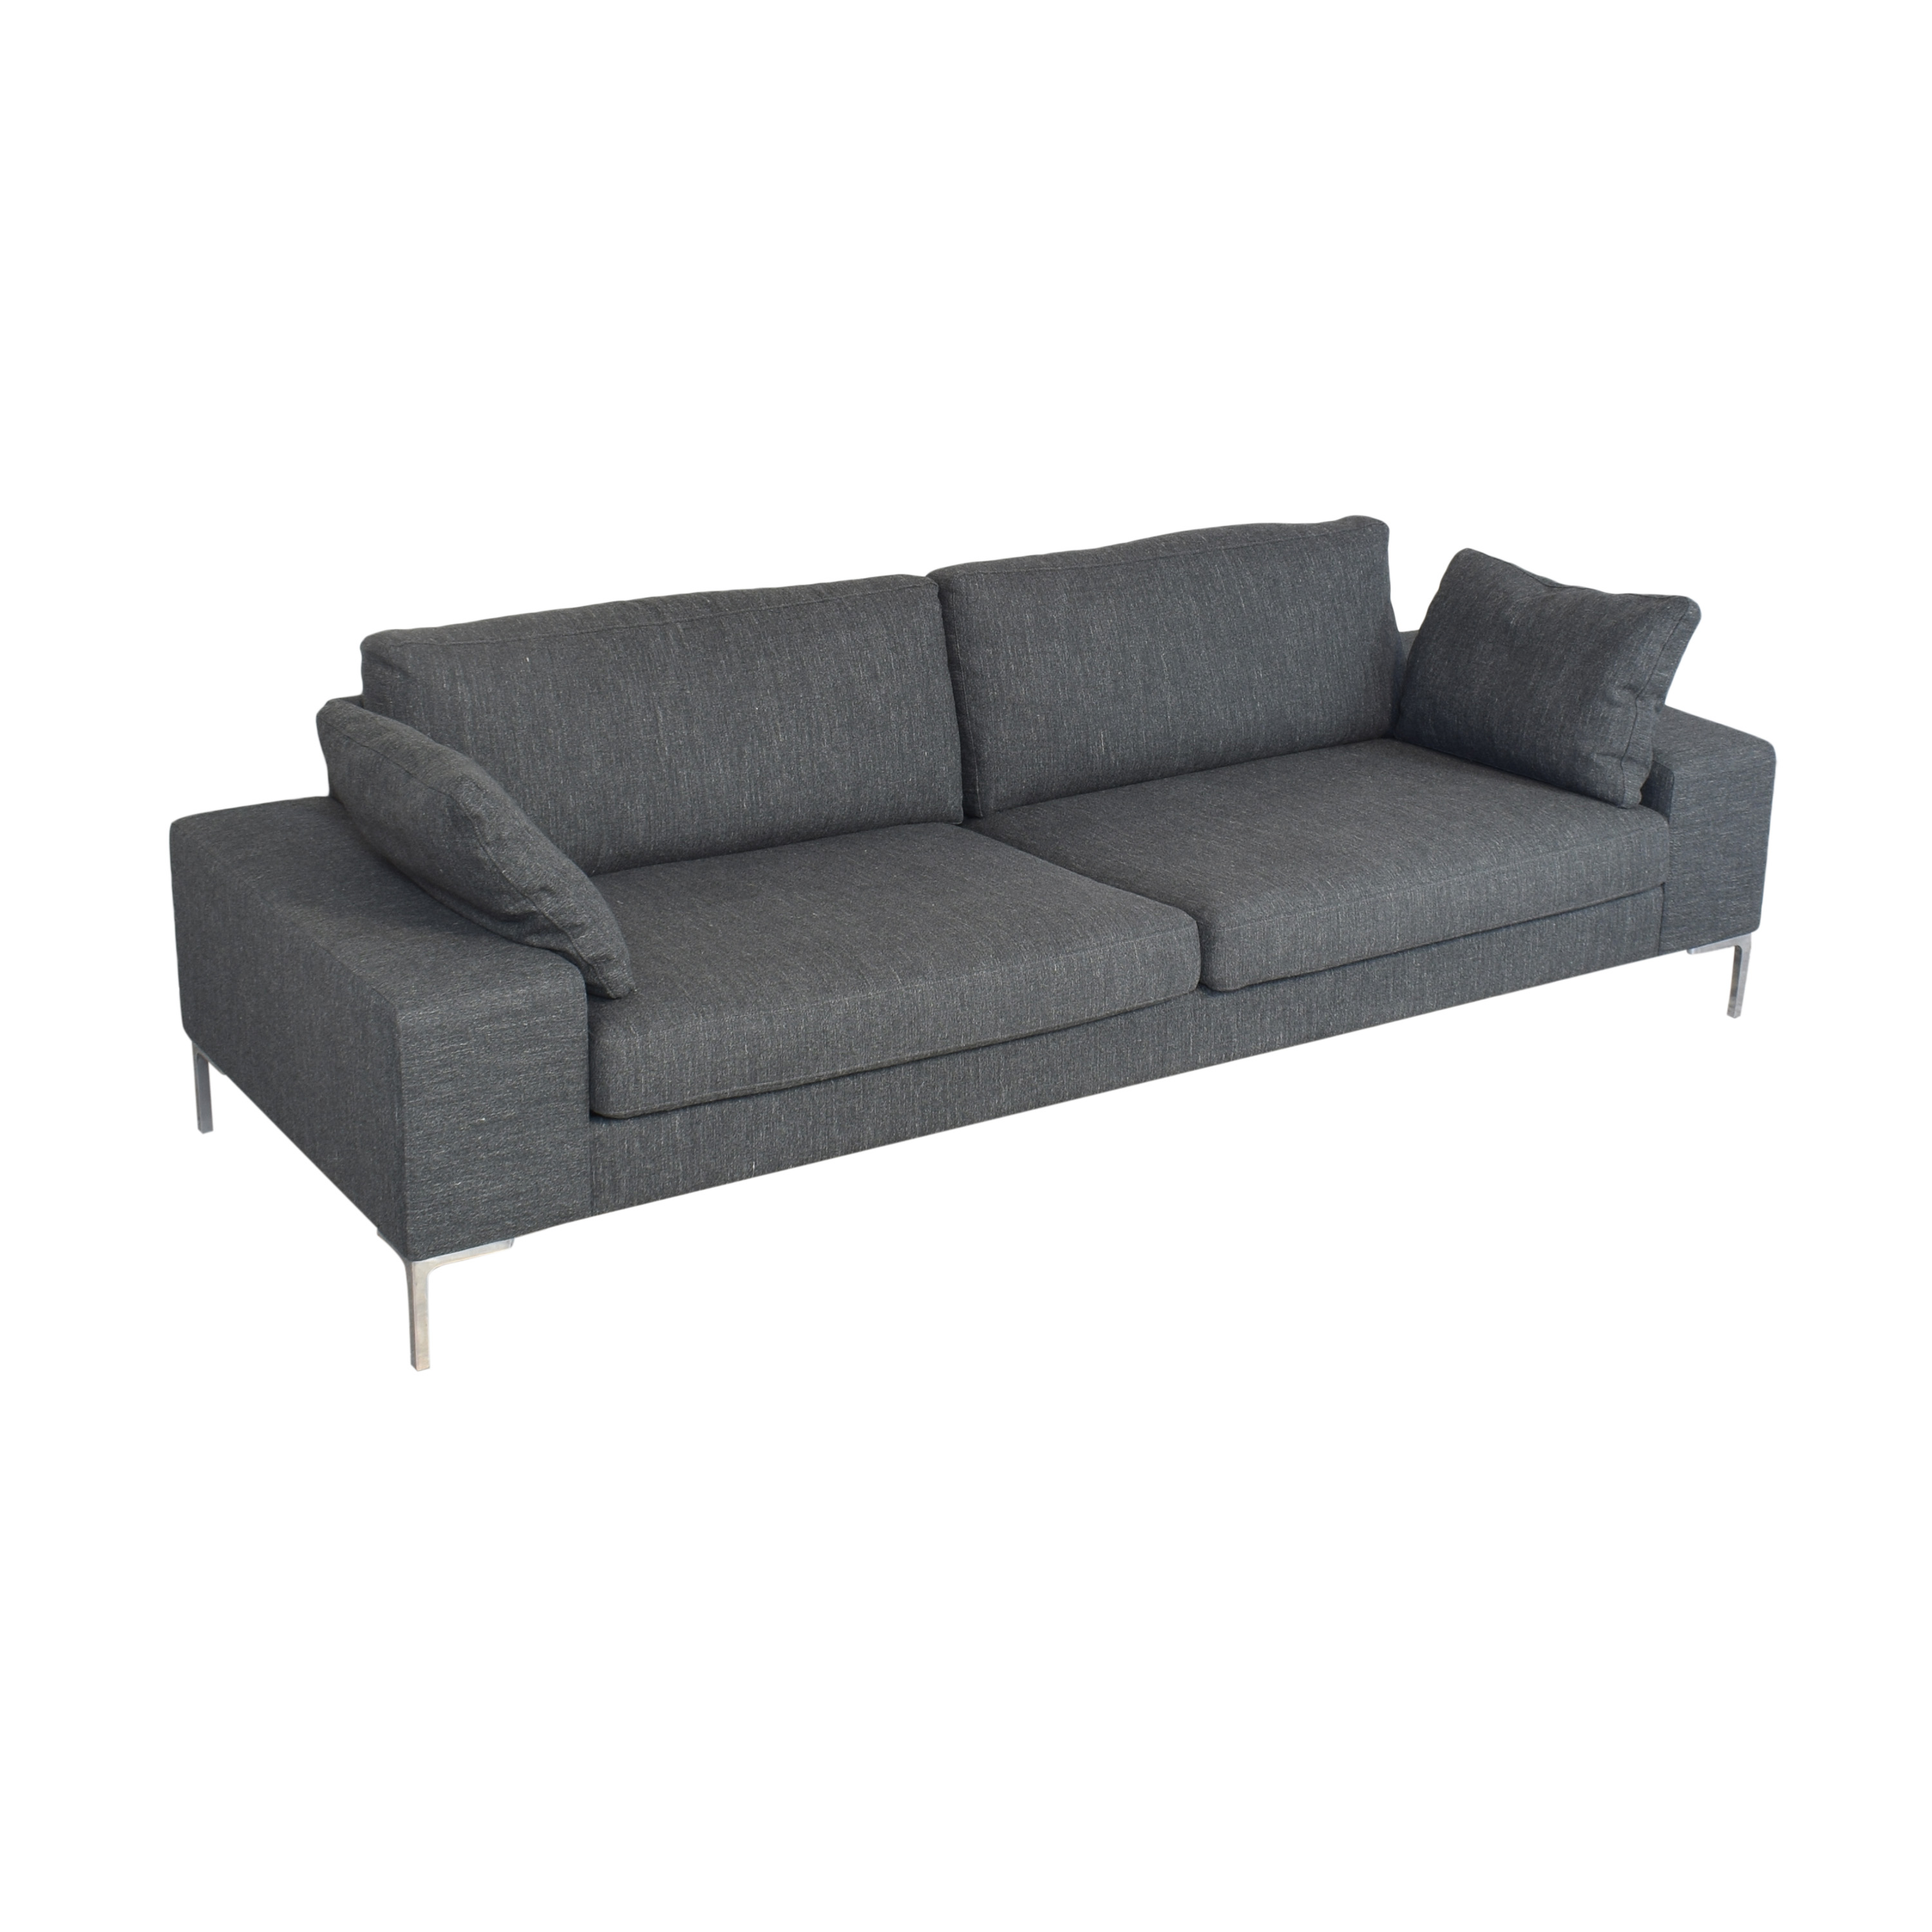 Design Within Reach Design Within Reach Arena Sofa on sale